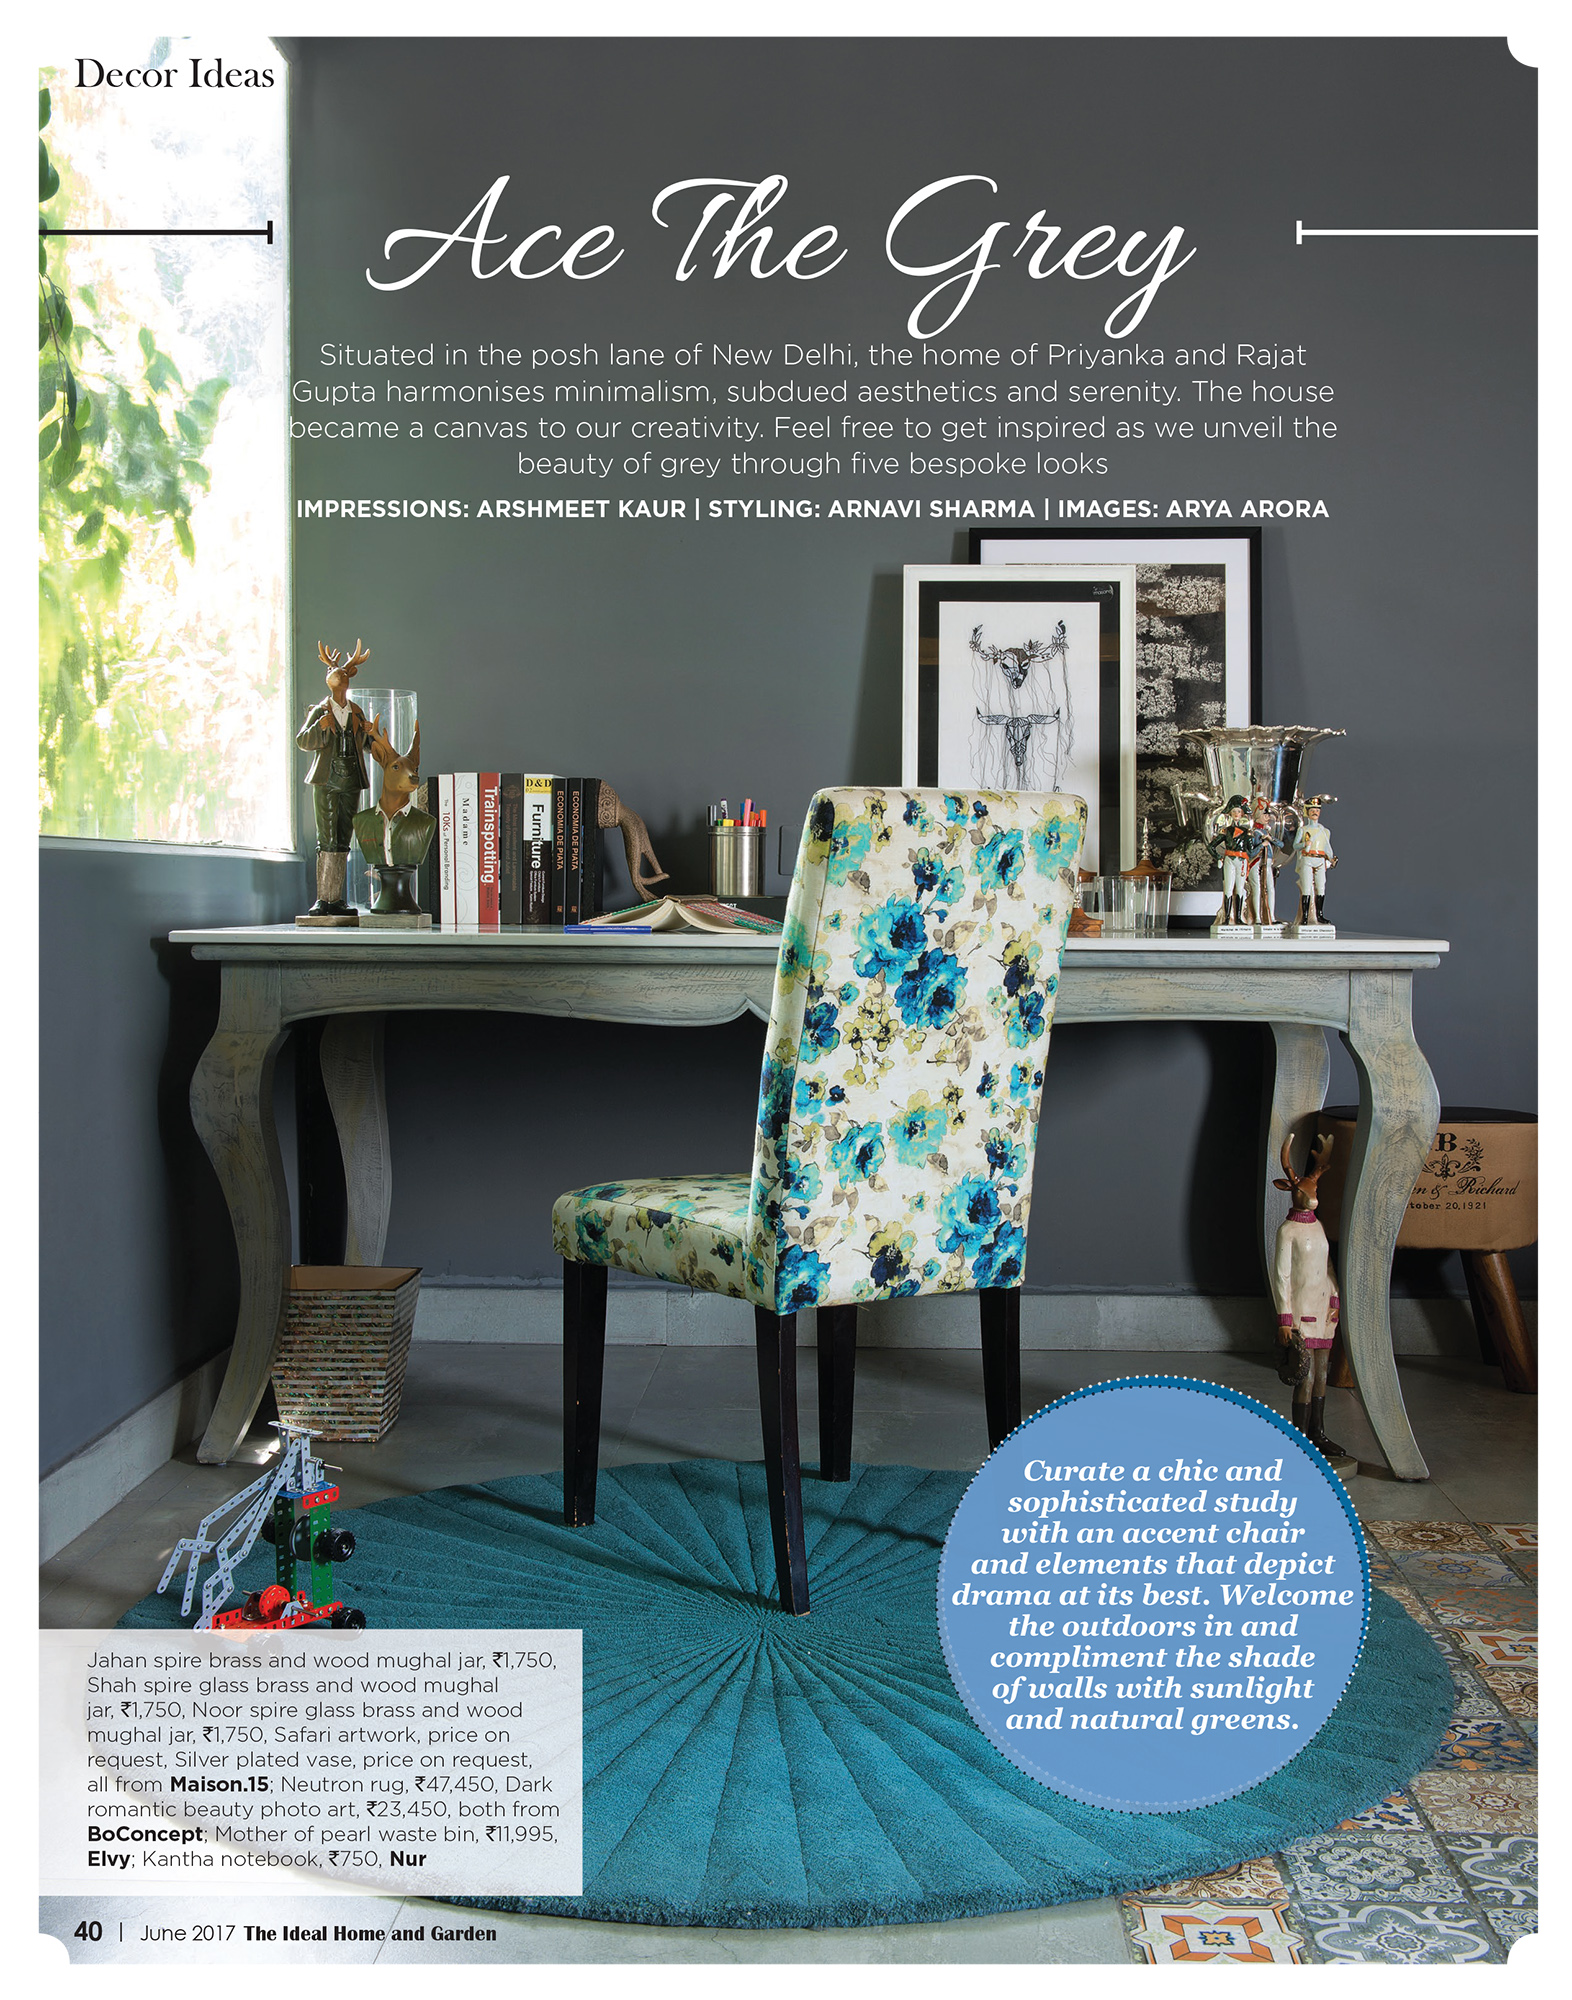 Ideal Homes - Ace the grey